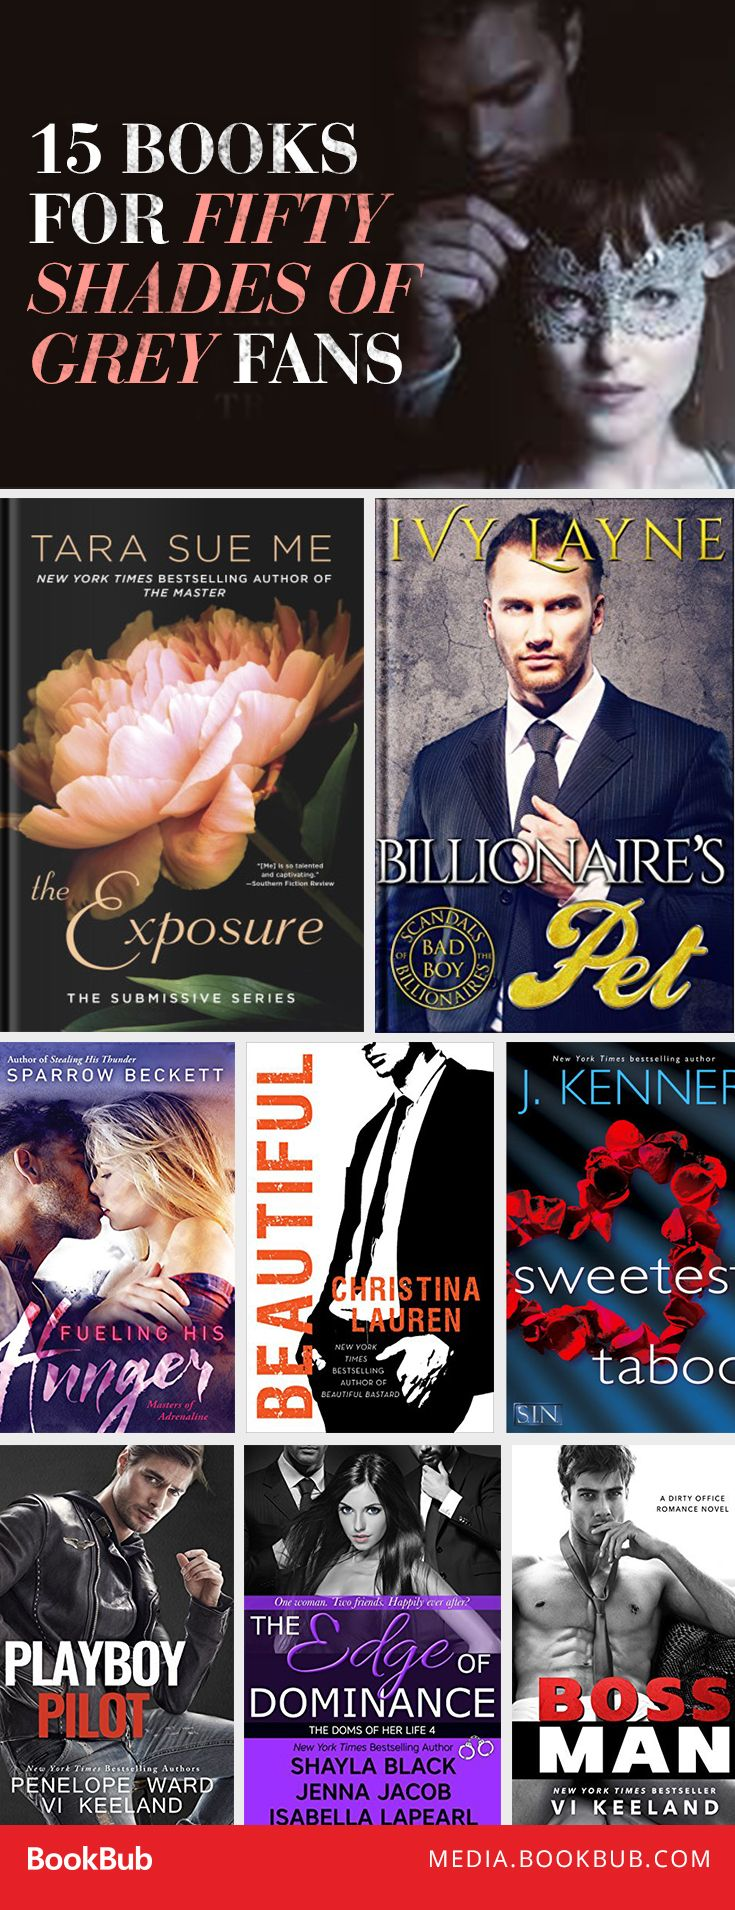 15 books to read for fans of Fifty Shades of Grey, including reads from J. Kenner and Christina Lauren.